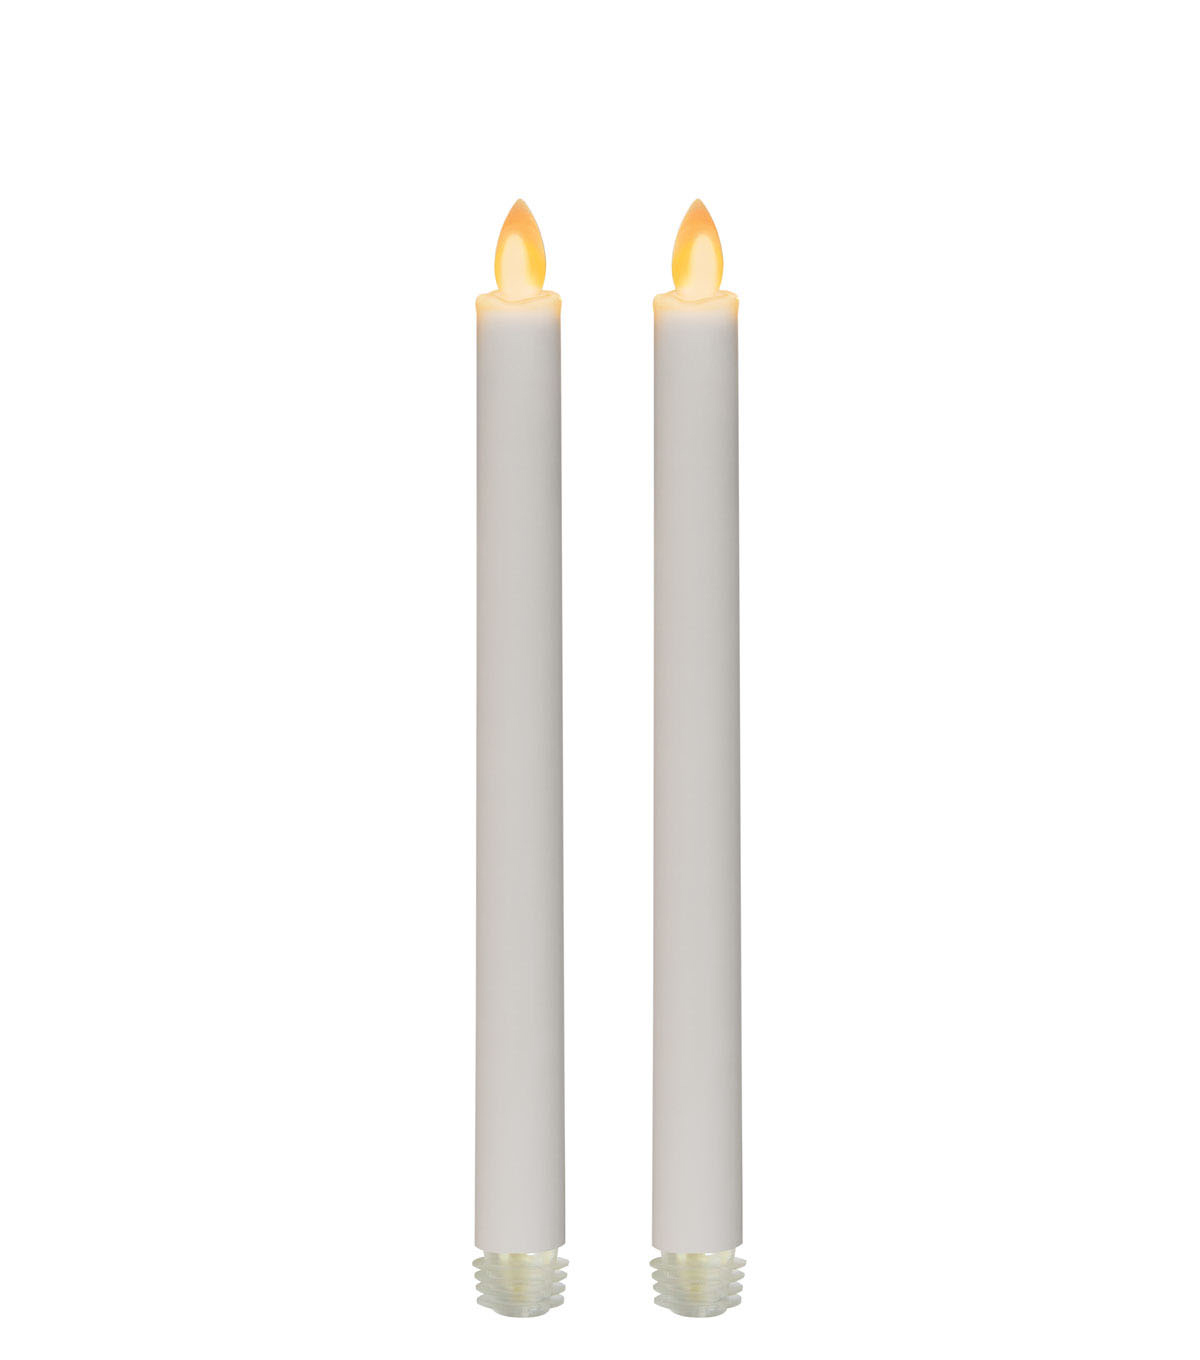 Hudson 43 Candle & Light Collection 2 Pack White Iflicker Tapers